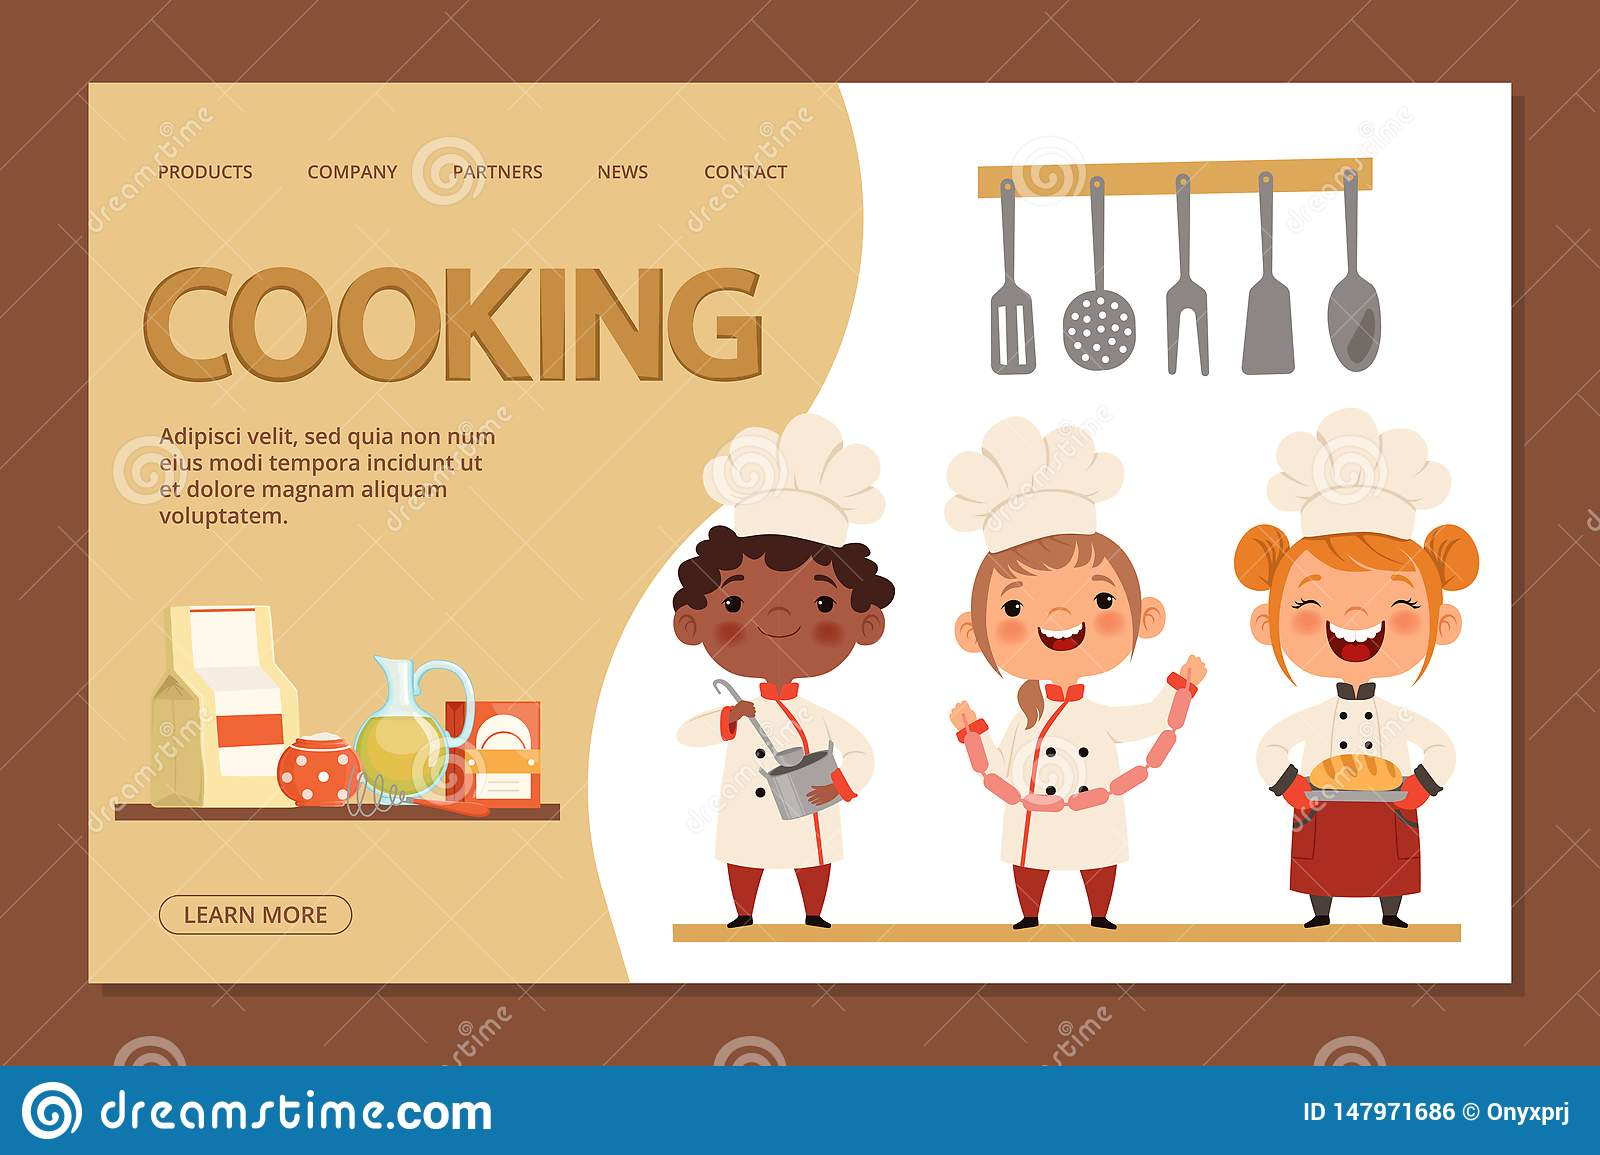 Cute Kids Chefs Cooking Landing Page Banner Template With Cartoon Character Children And Utensils Stock Vector Illustration Of Child Culinary 147971686